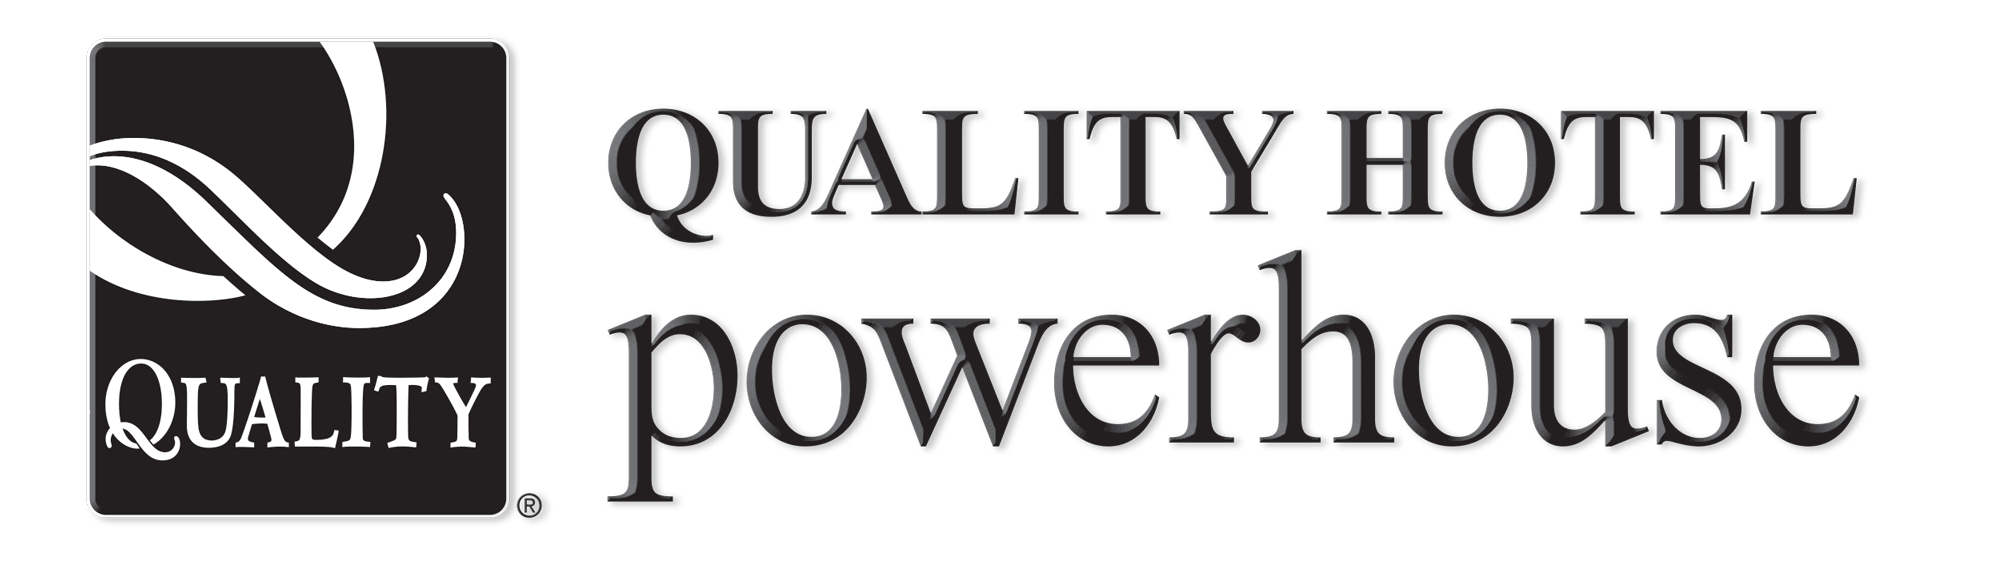 Quality Hotel Powerhouse Logo and Images